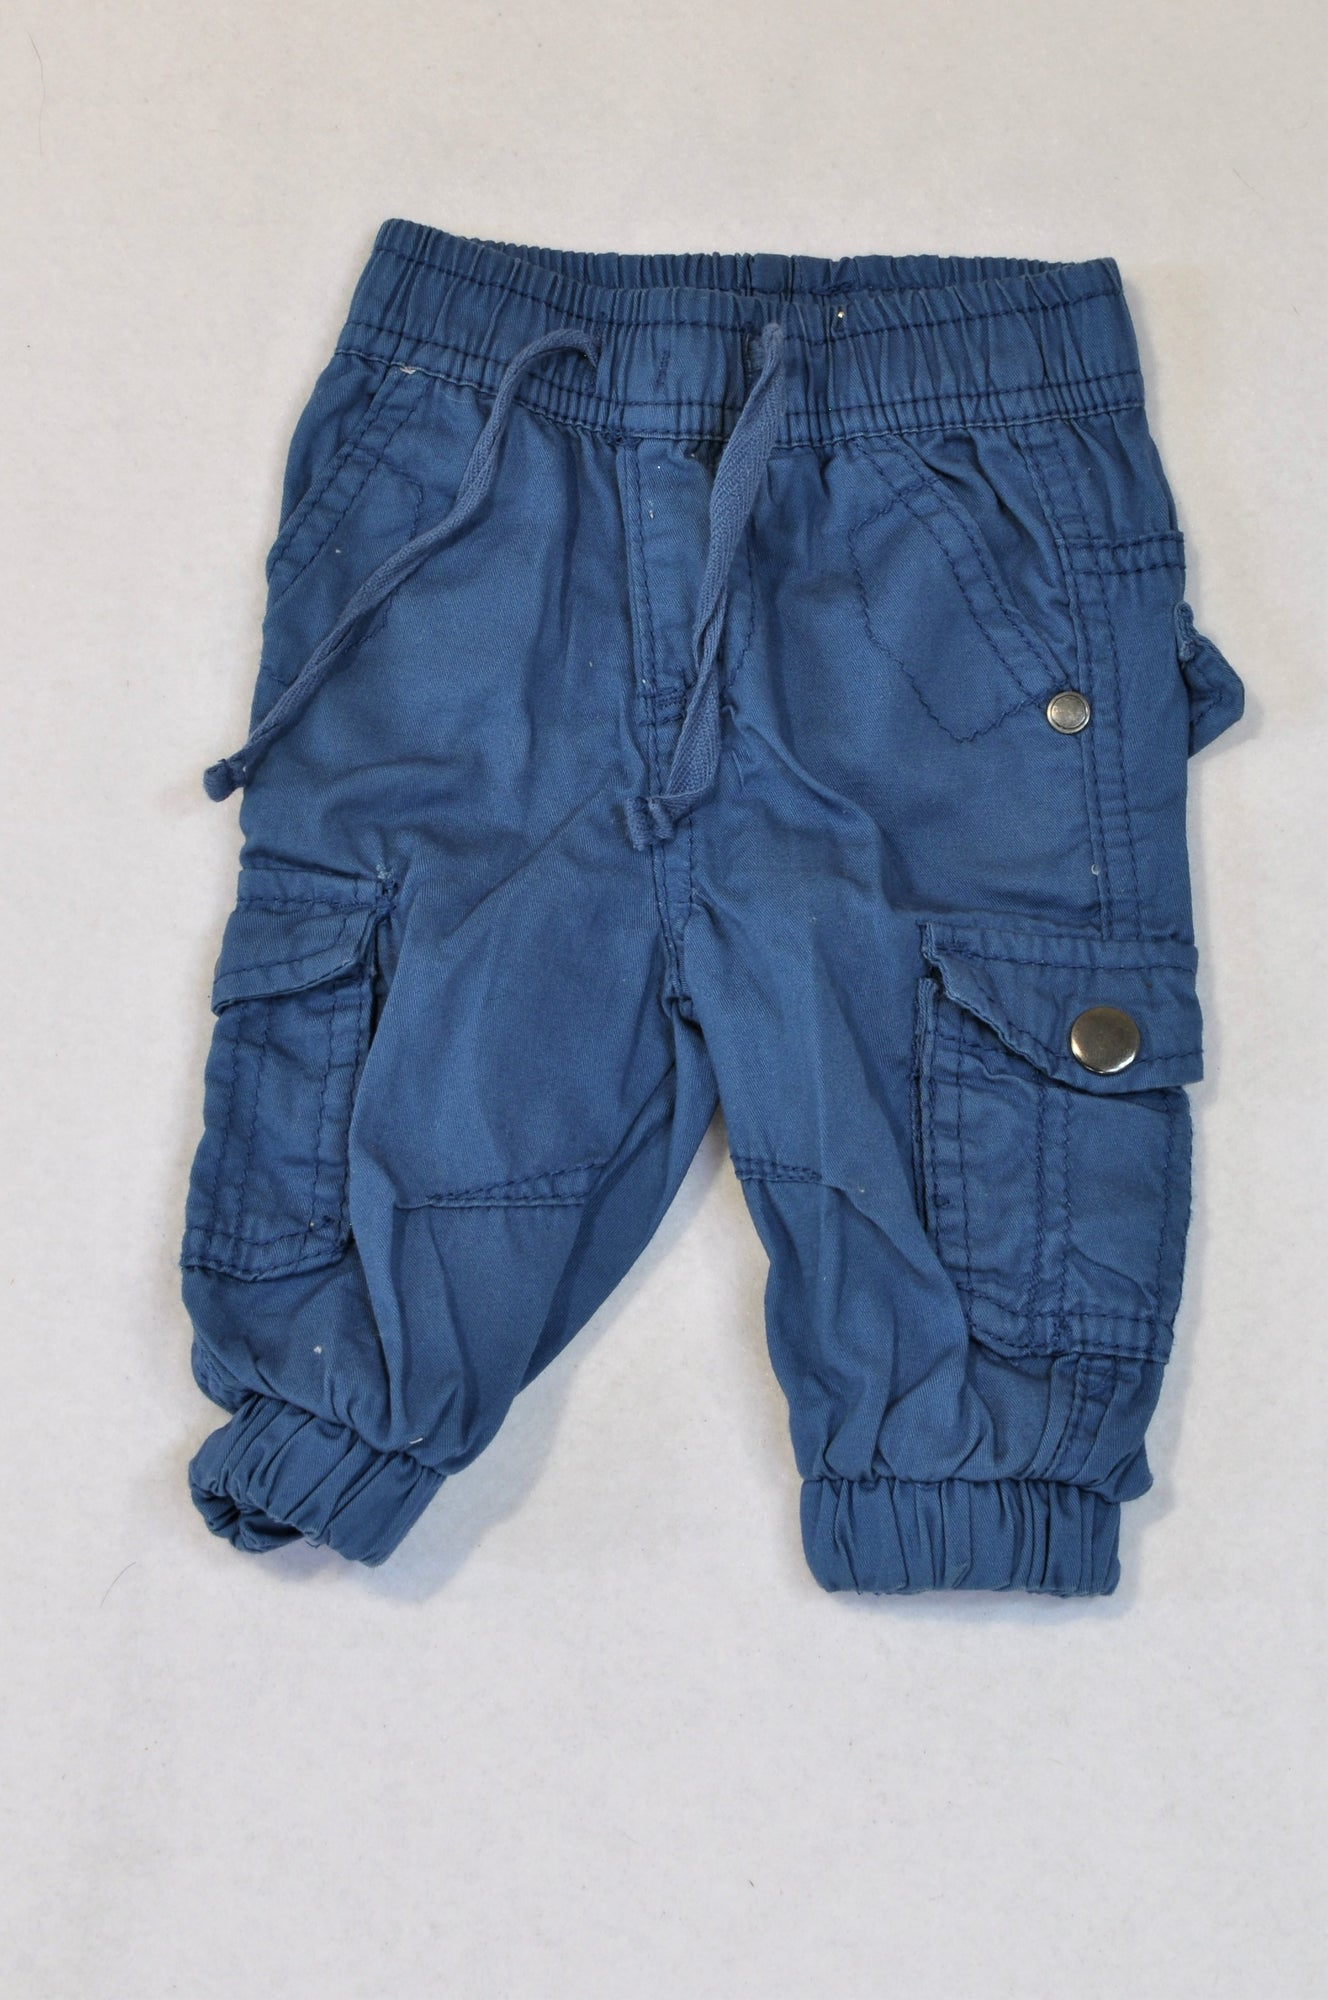 Edgars Navy Banded Cuffed Pants Boys 0-3 months